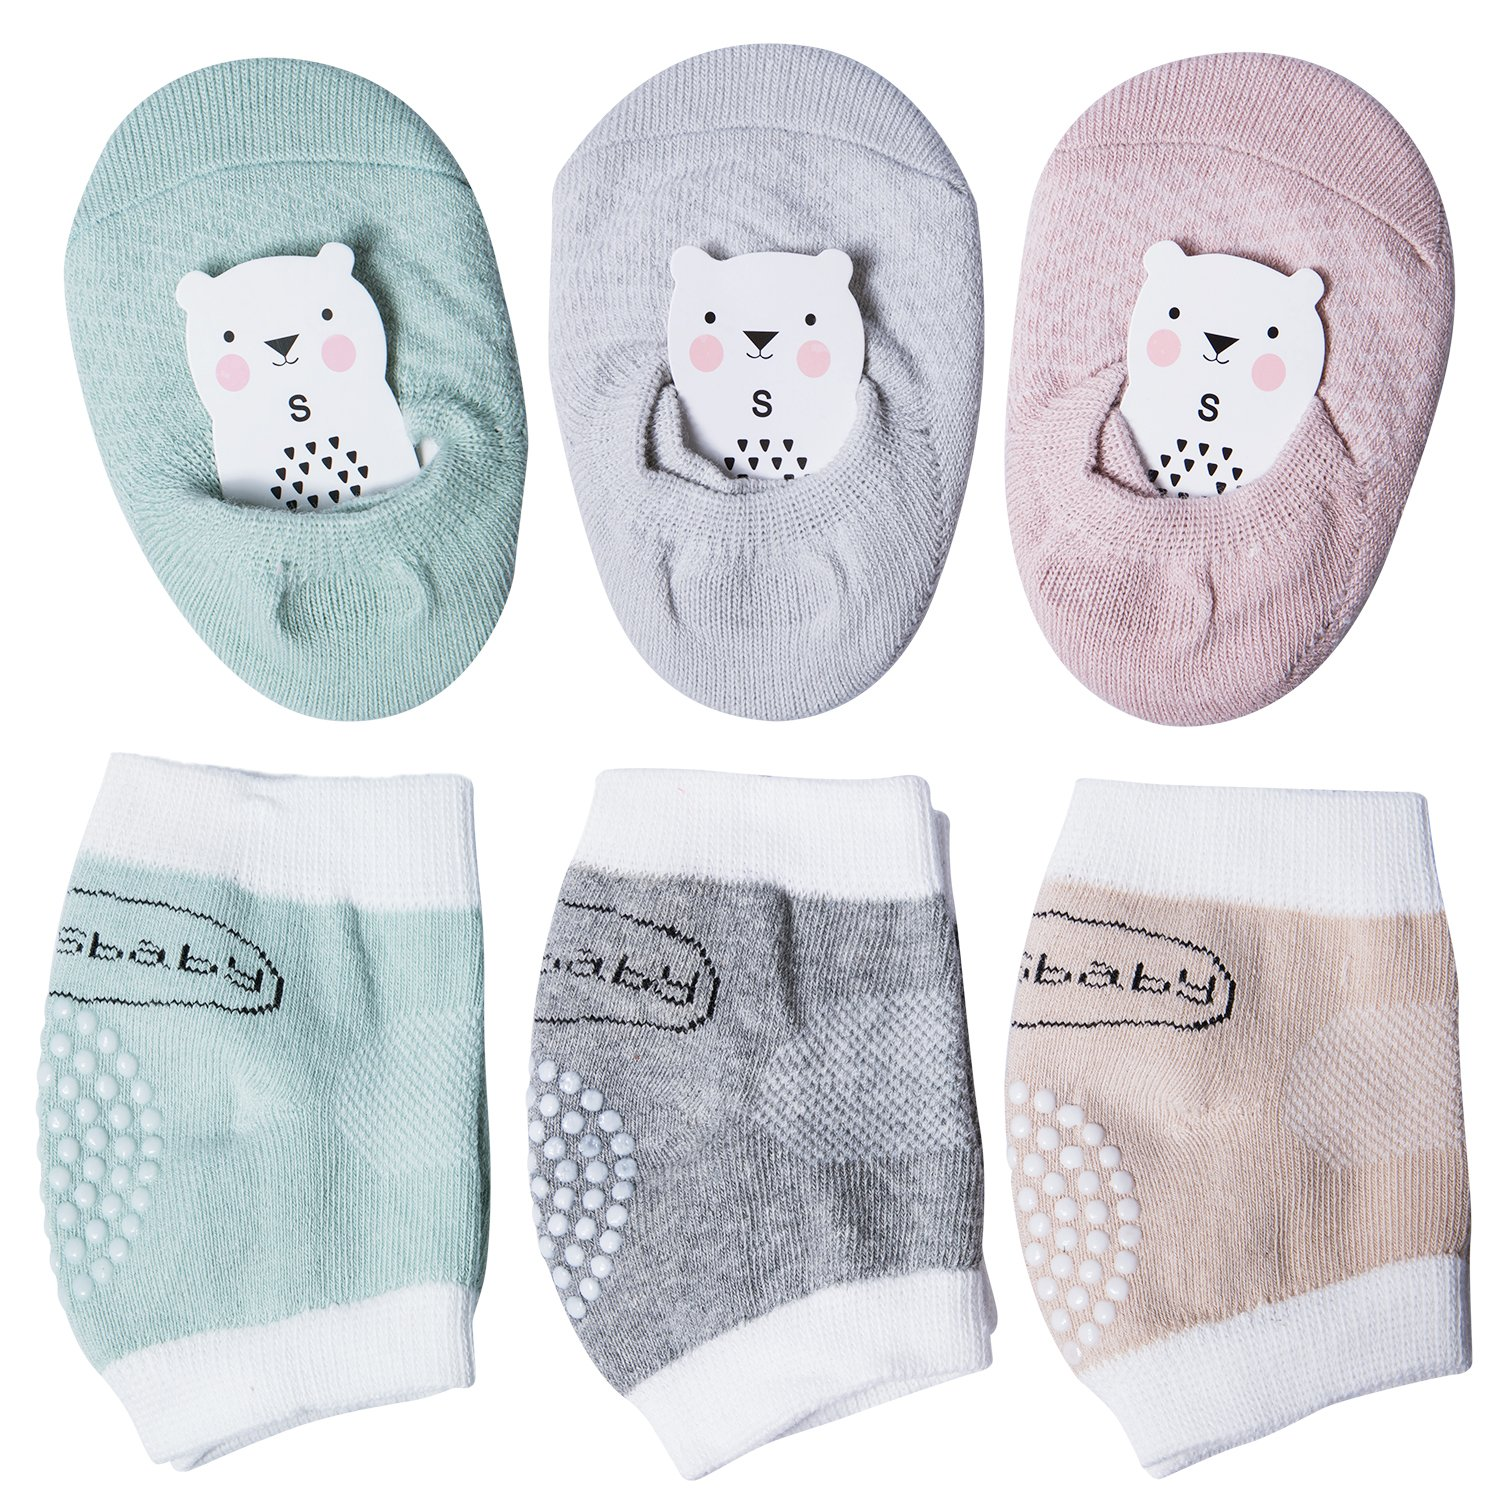 bc3578f5bf PACKAGE - One pack contains 3 Pairs Baby Knee Pads and 3 Pairs Grip Socks,  so you will get 6 Pairs in total. The perfect combination of kneepads and  socks ...